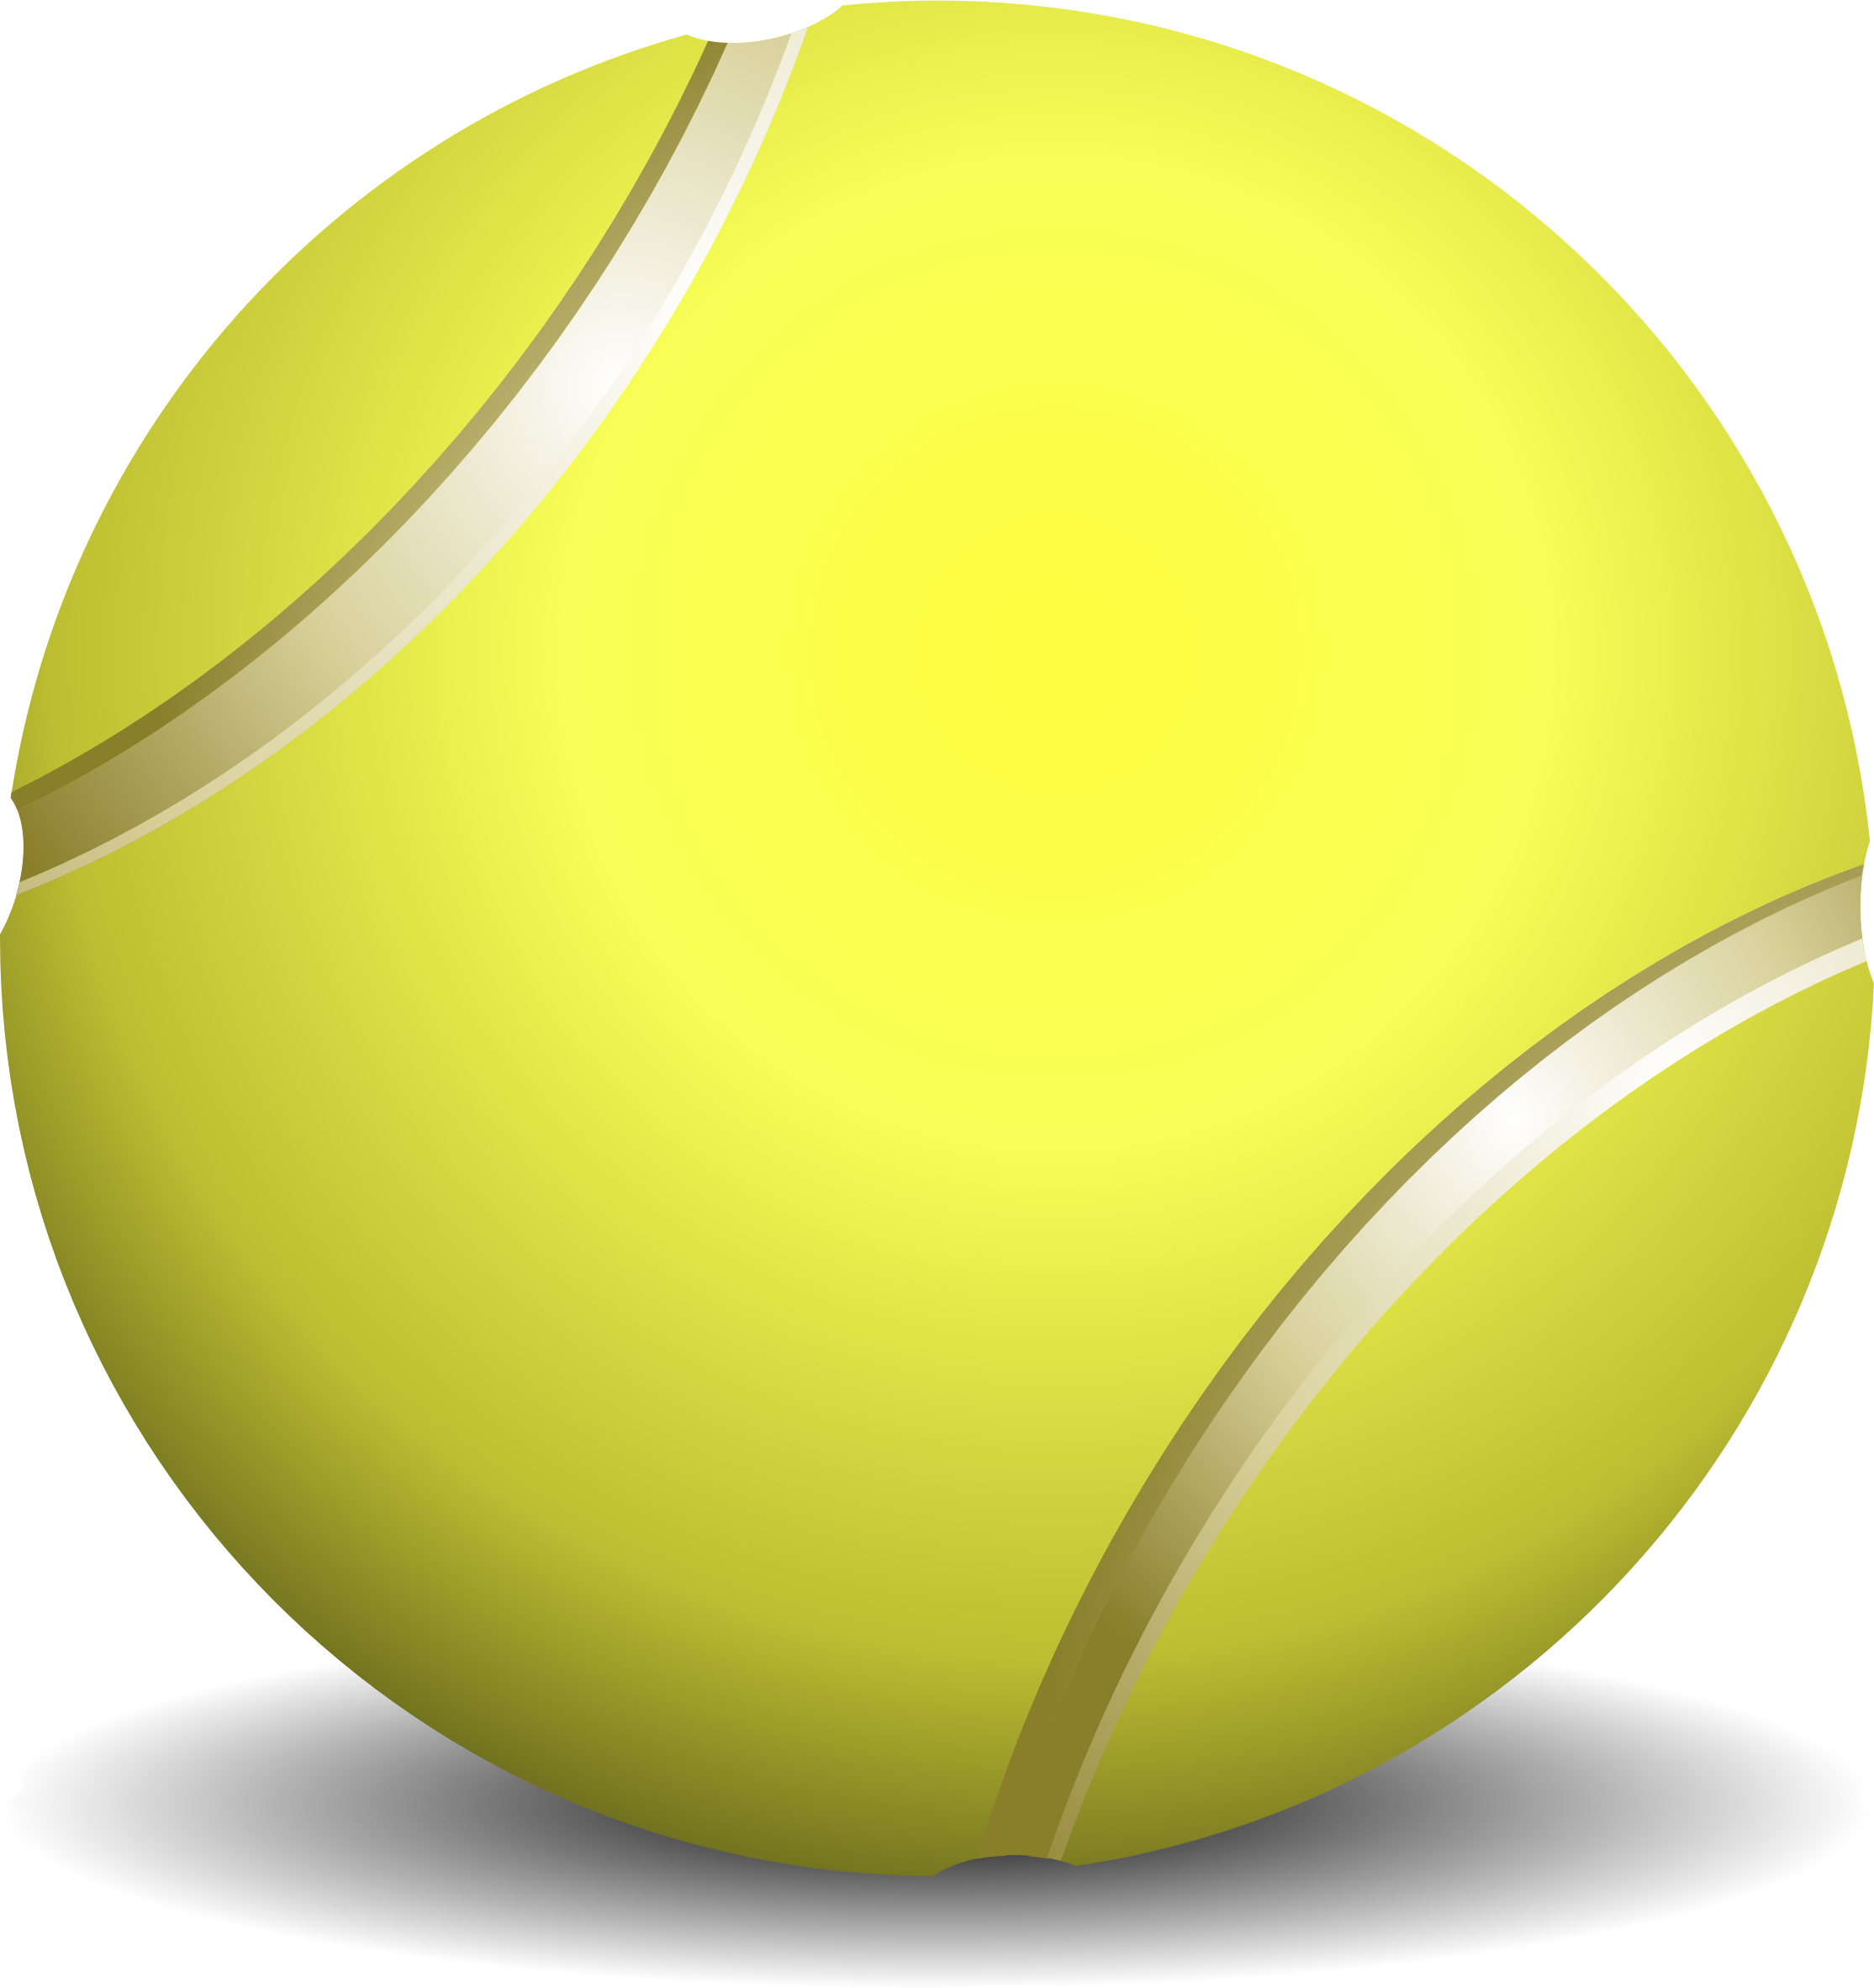 Free Tennis Ball Clip Art Pictures.